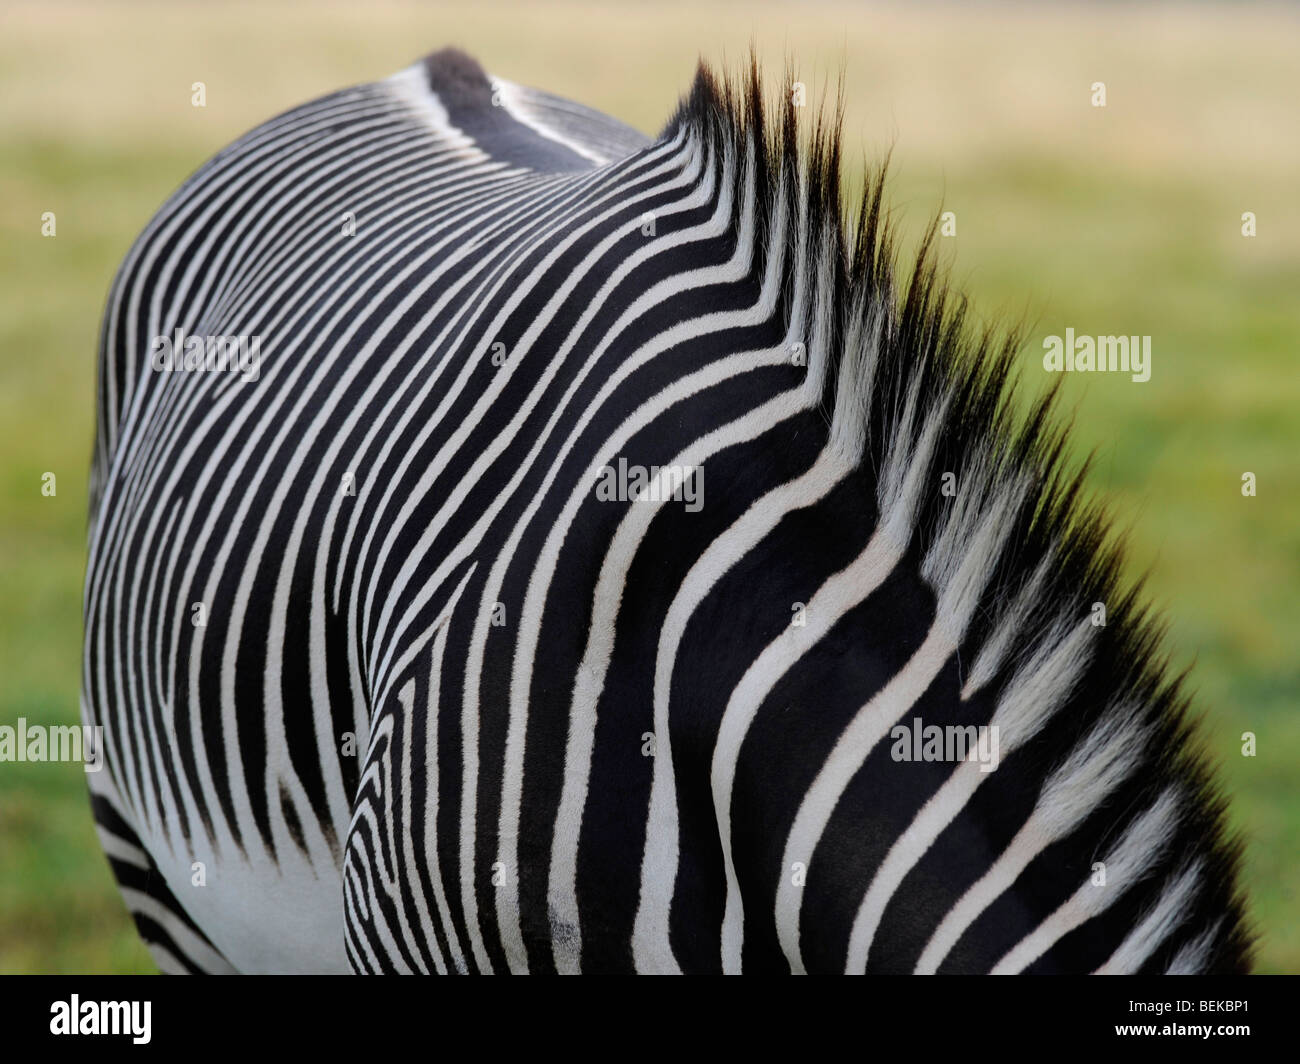 The coat of a zebra with a striped mane. - Stock Image